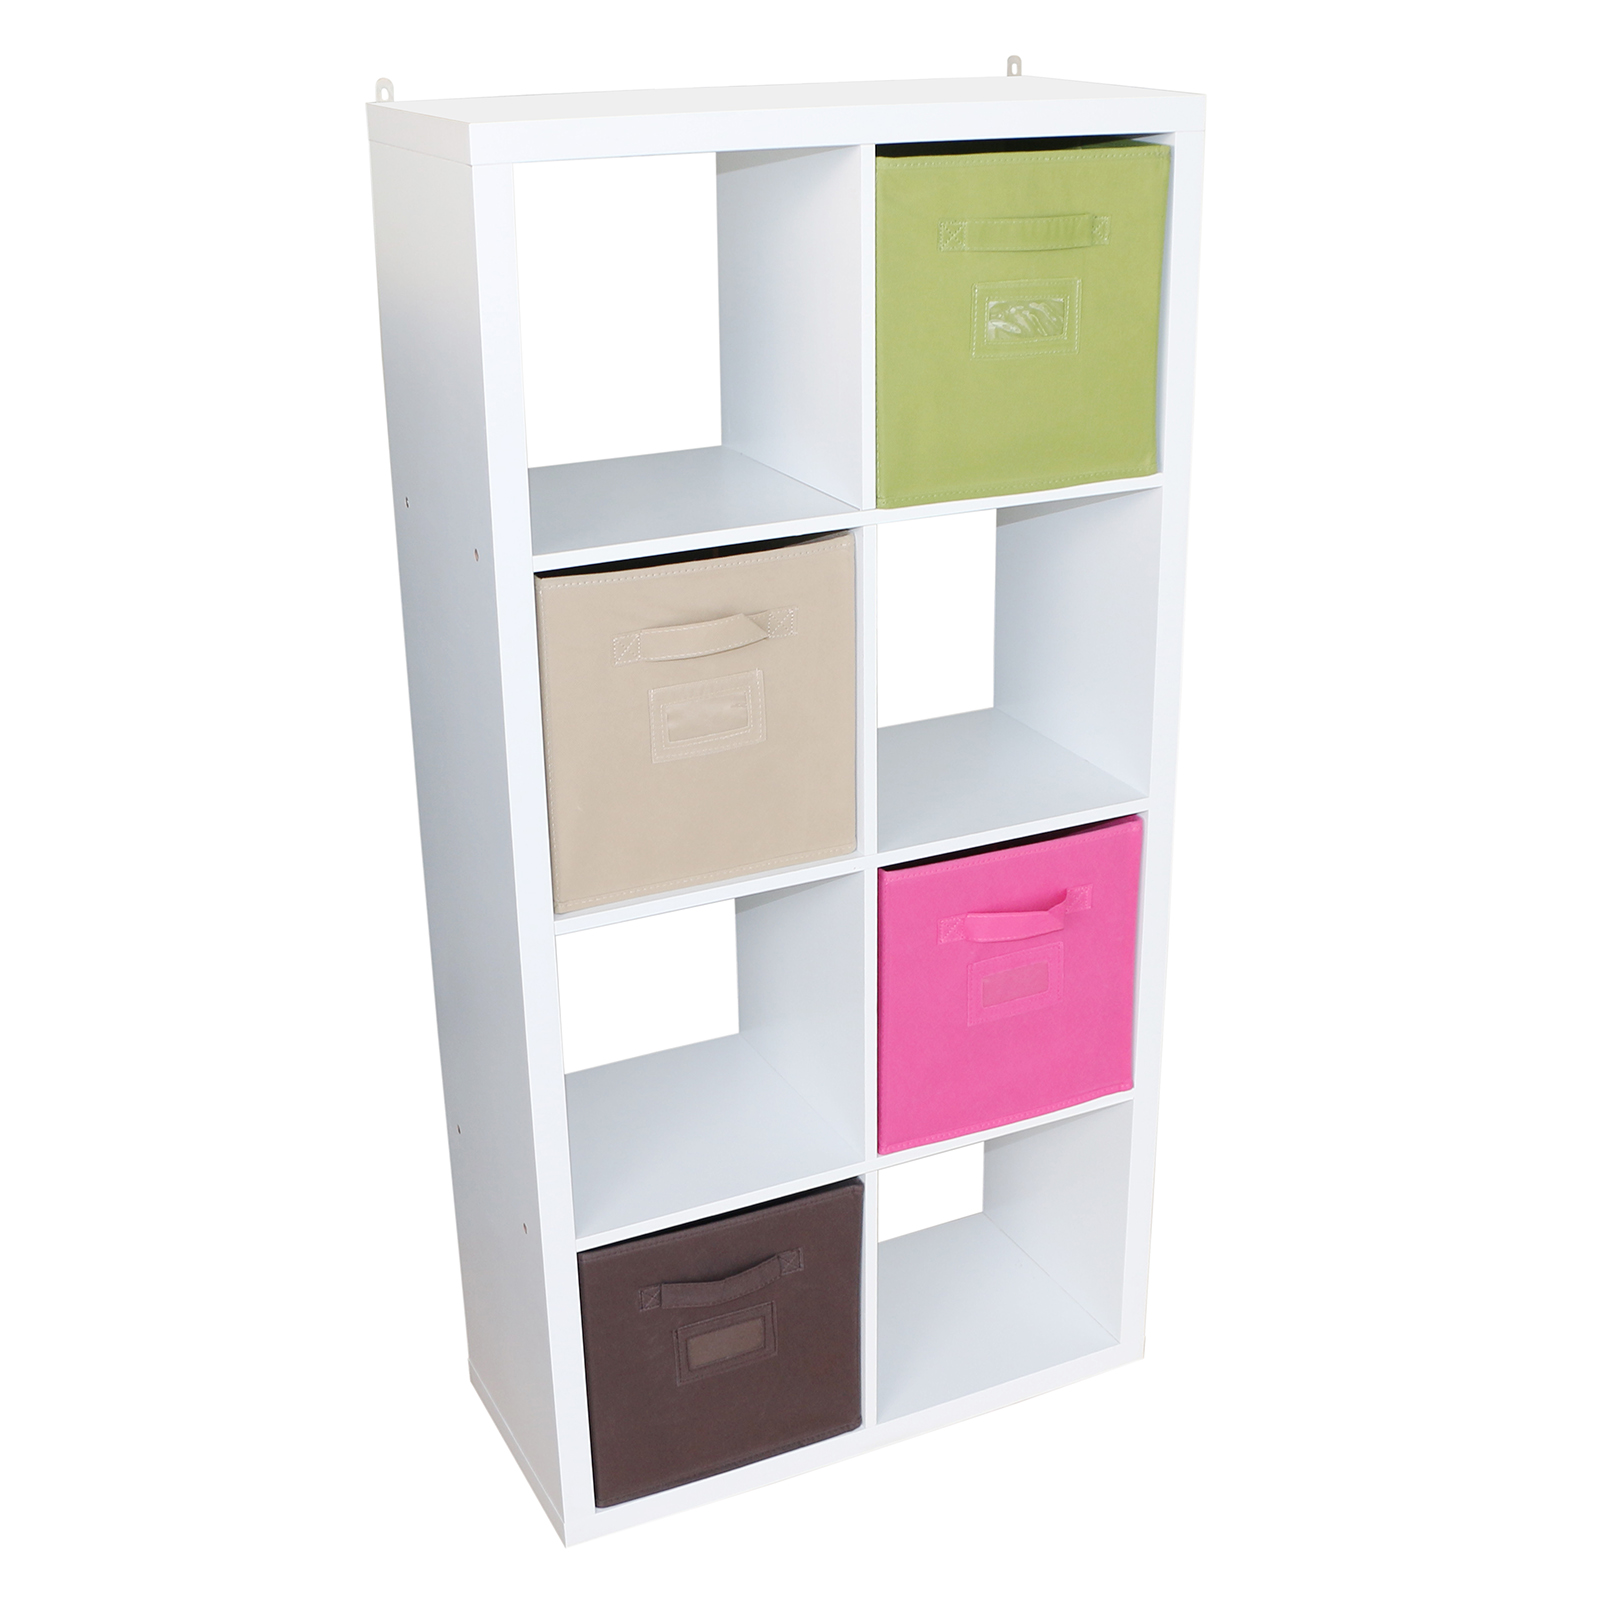 Recollections Craft Storage System 8 Cube Honeycomb